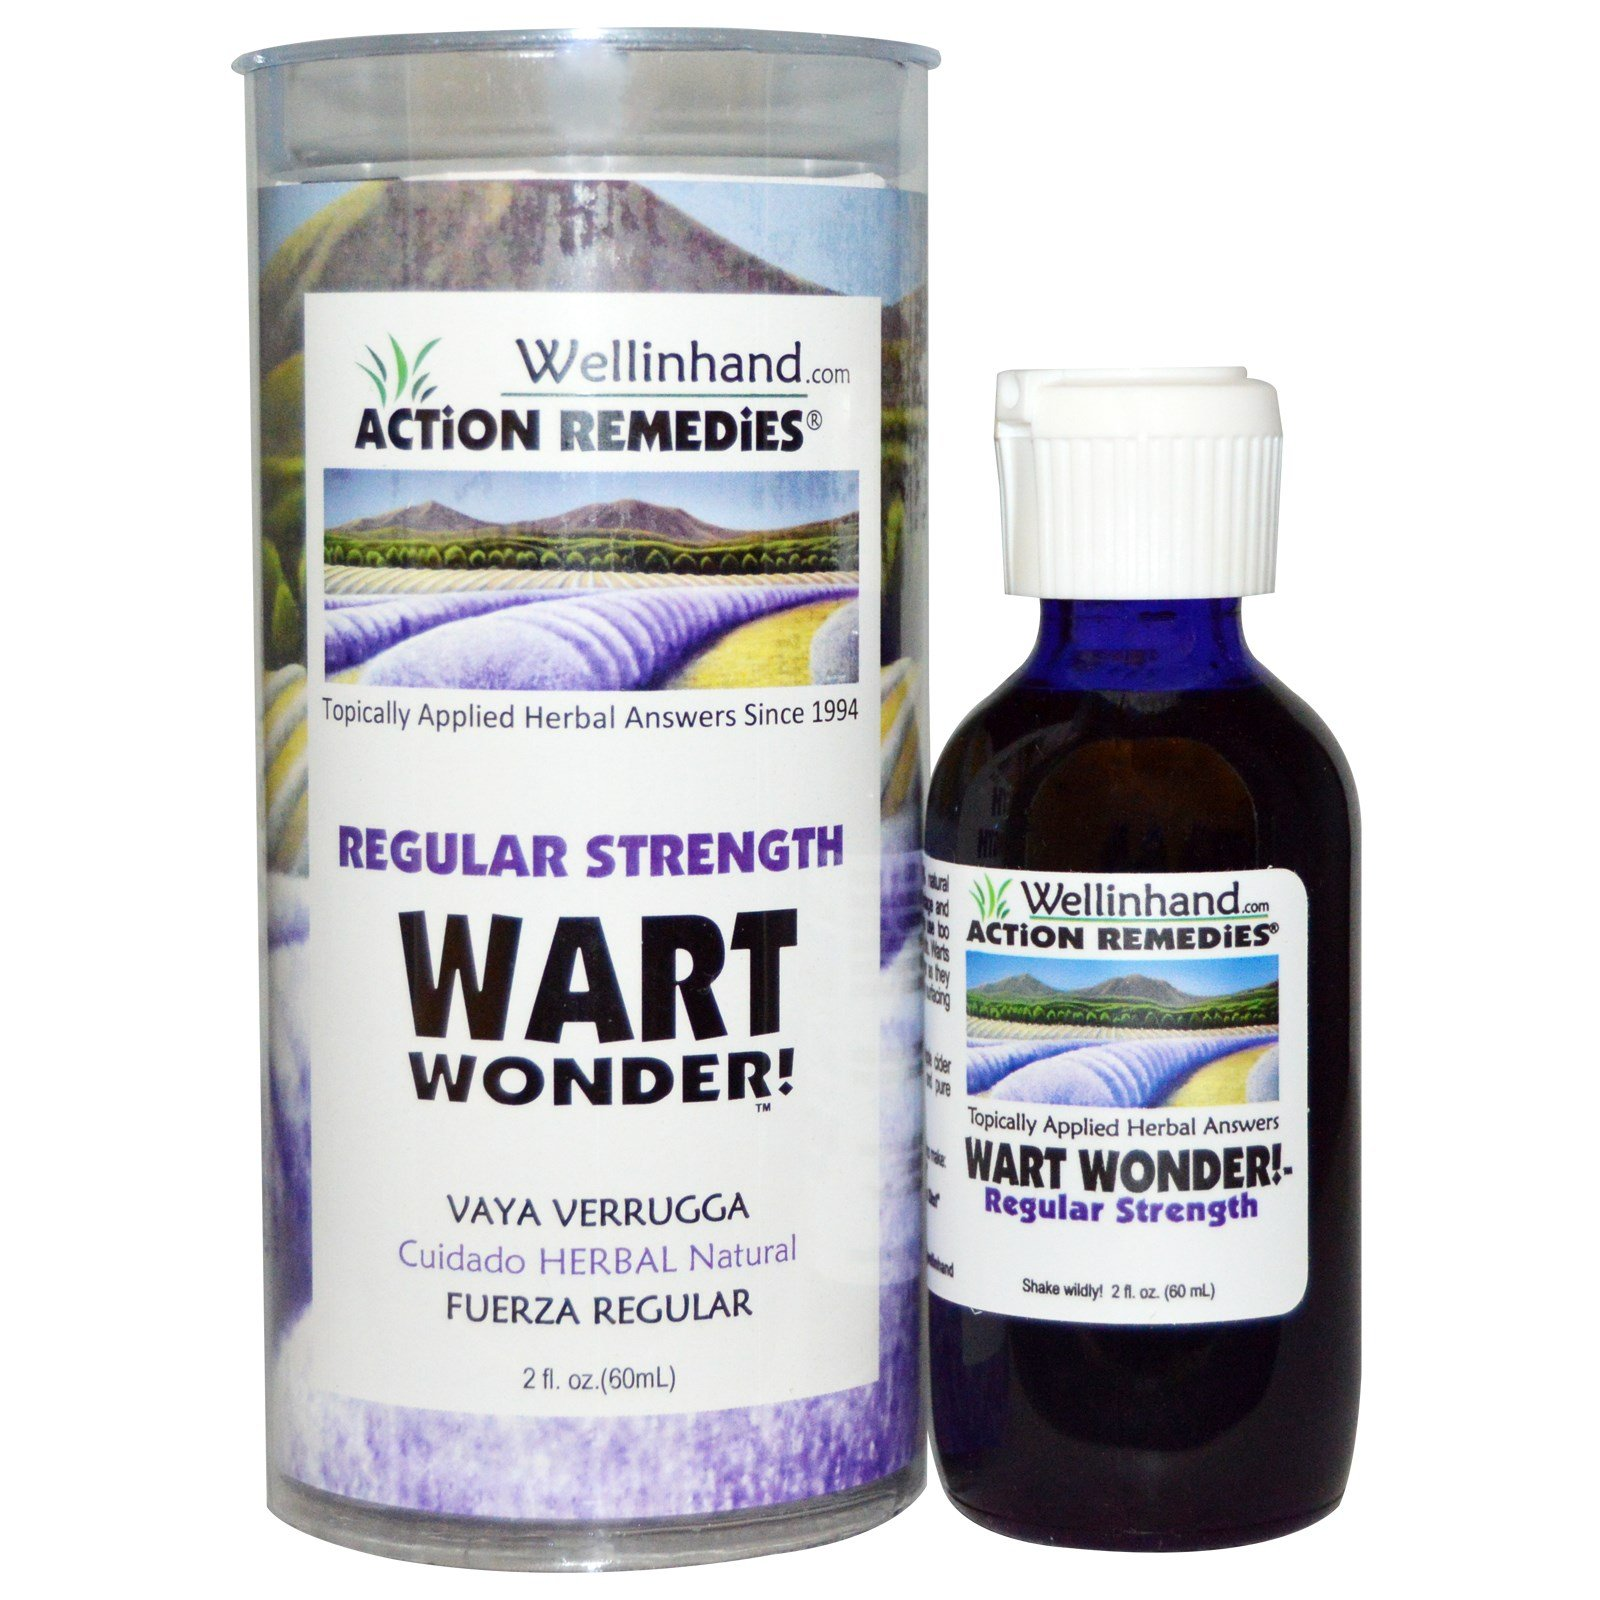 Wellinhand Action Remedies, Wart Wonder, Regular Strength, 2 fl oz (60 ml) - 3PC